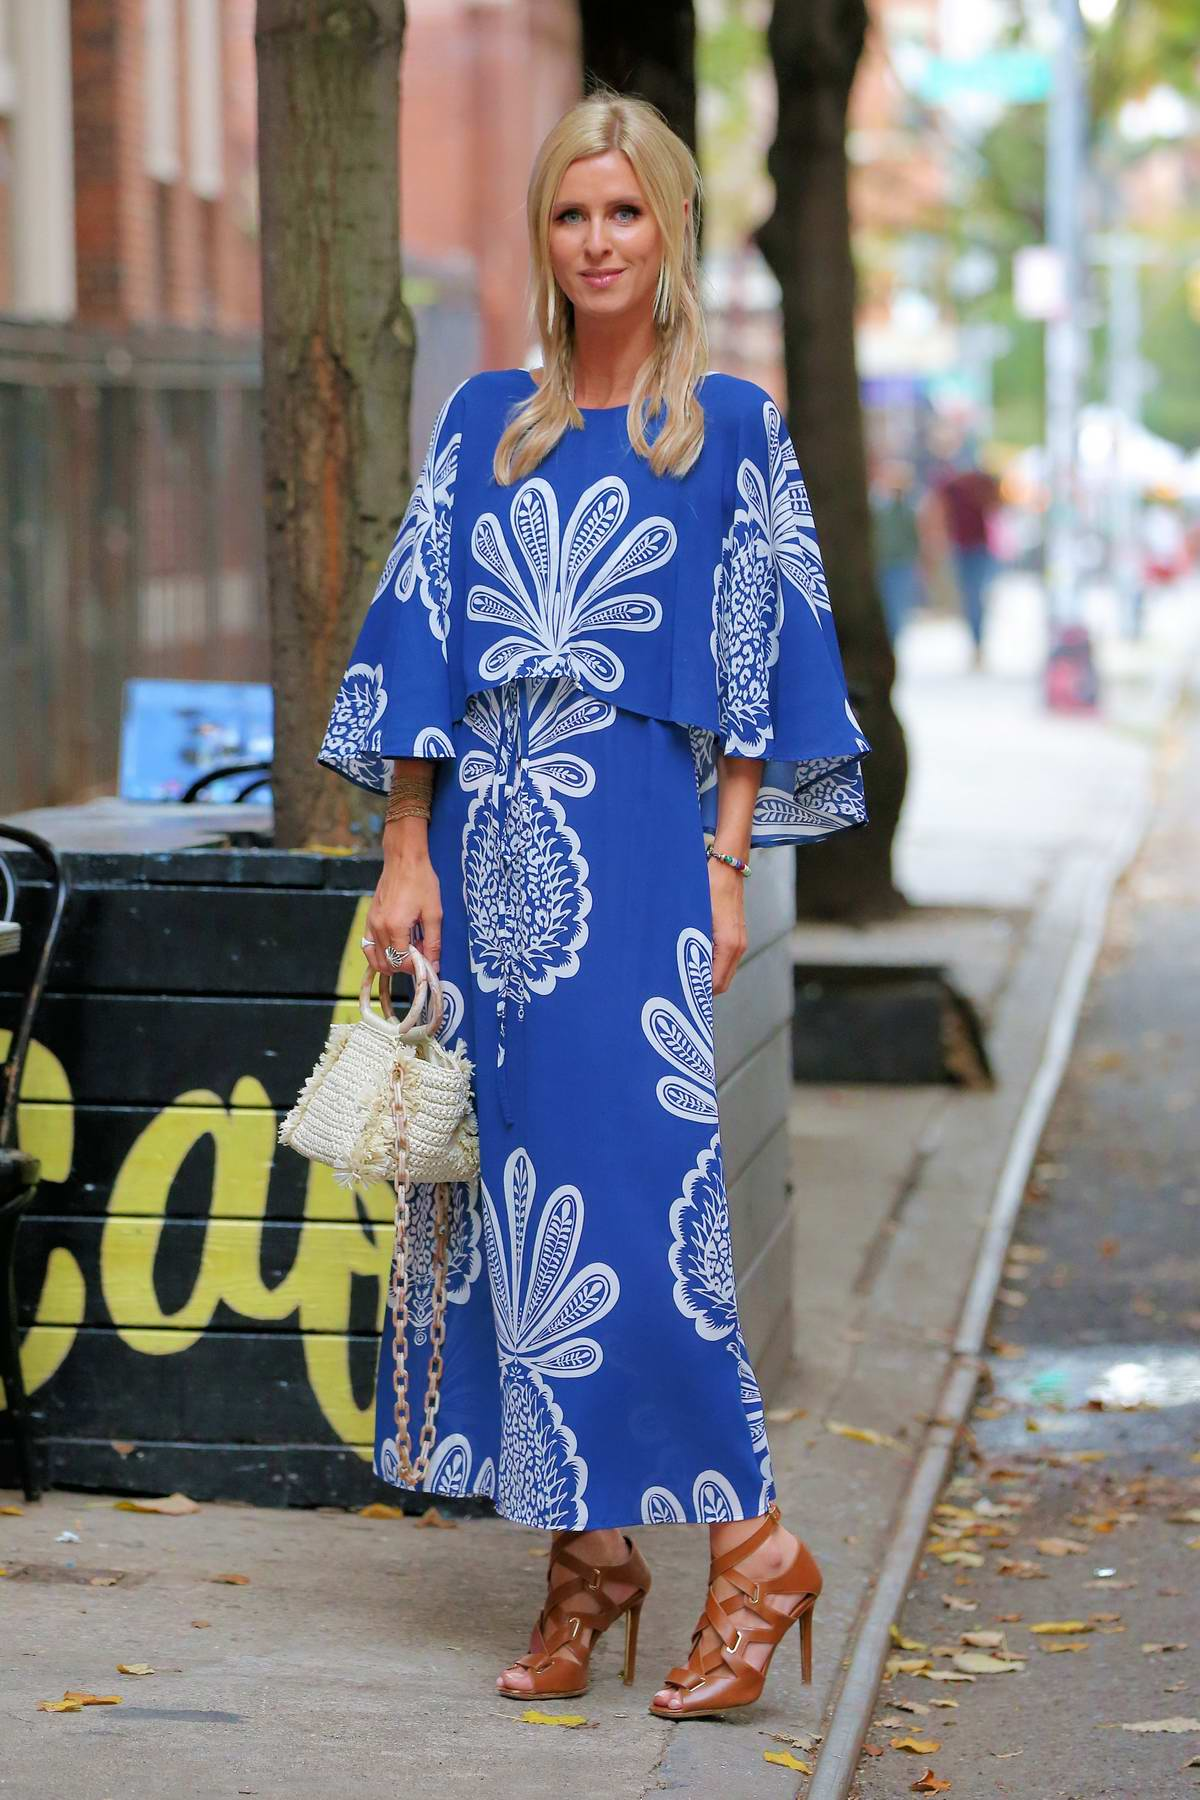 Nicky Hilton looks great in a blue maxi dress while out on stroll in New York City